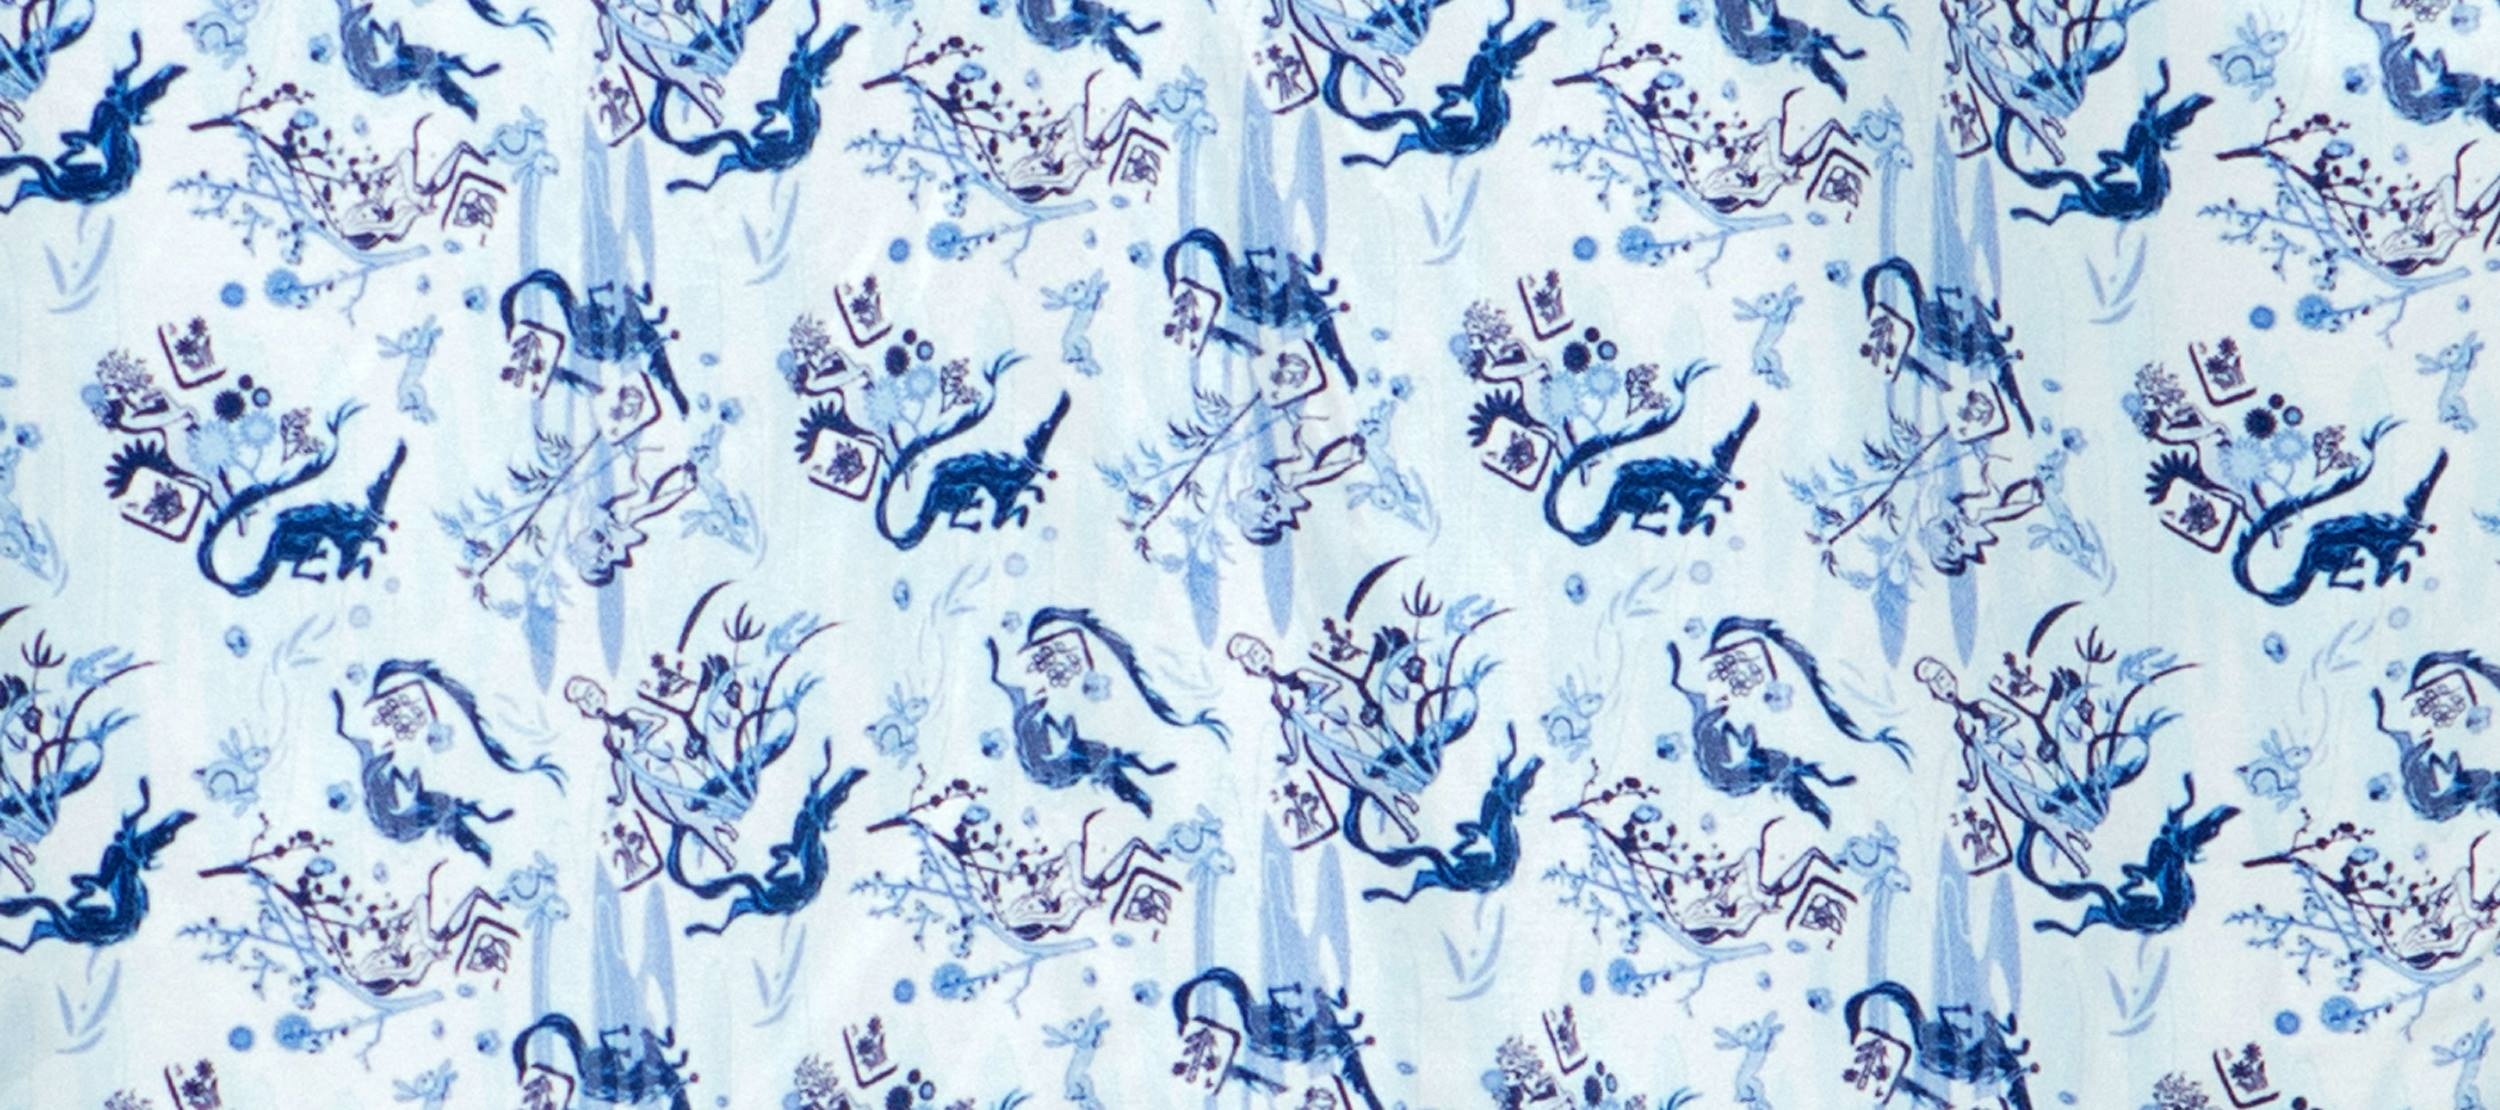 A closer look at the print designed specifically for Jake's recent collection